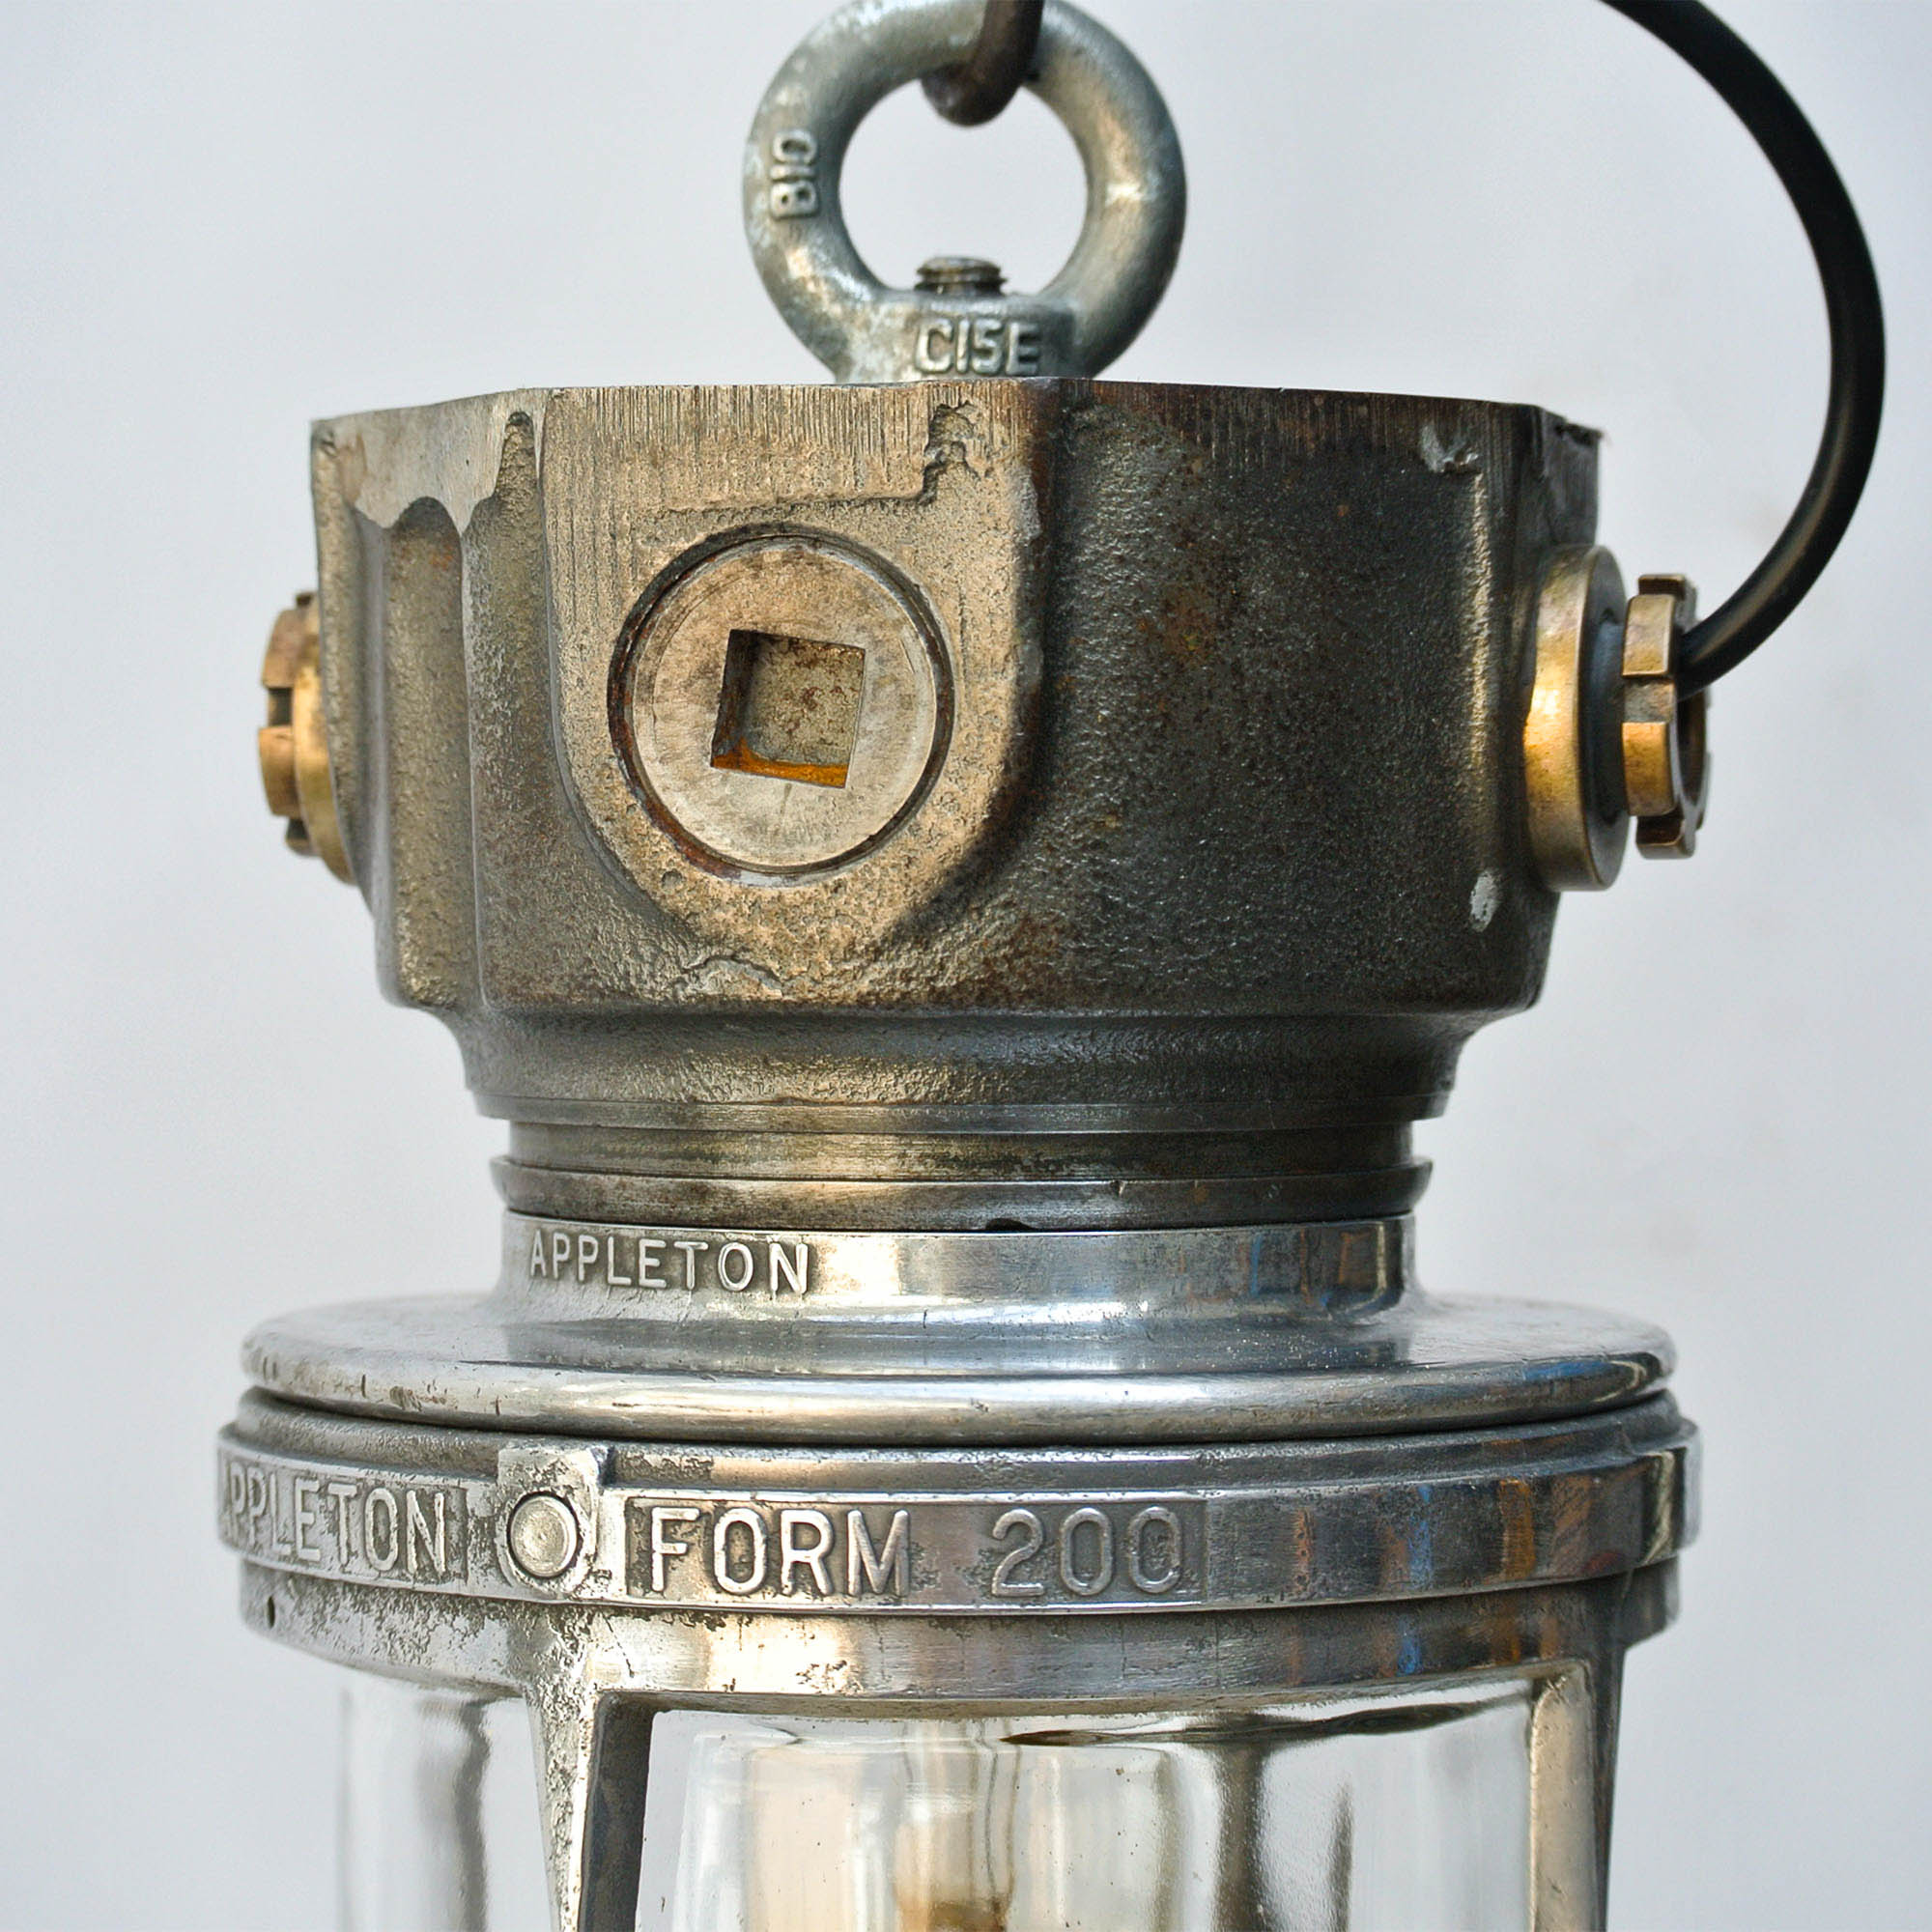 Canadian American Explosion Proof Lamp